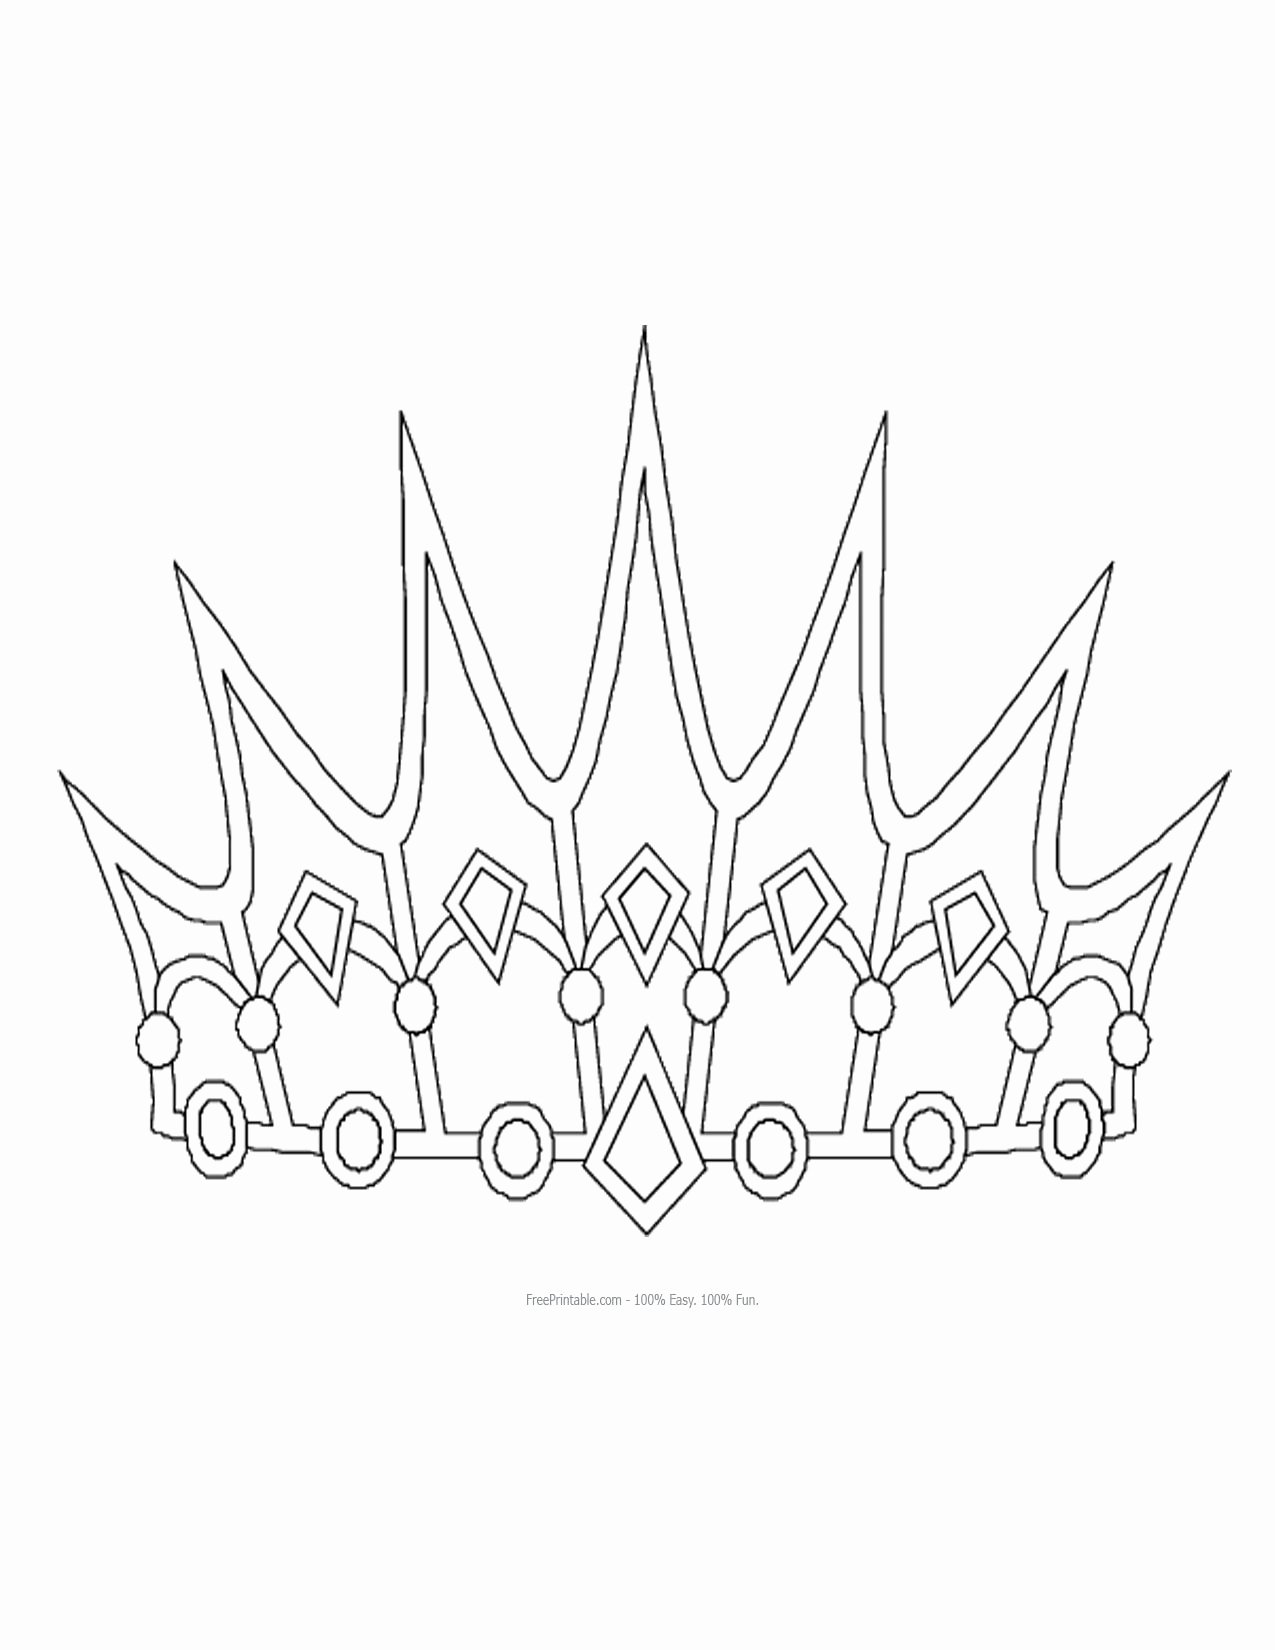 Free Princess Crown Template Printable Beautiful Free Printable Princess Crown Shapes